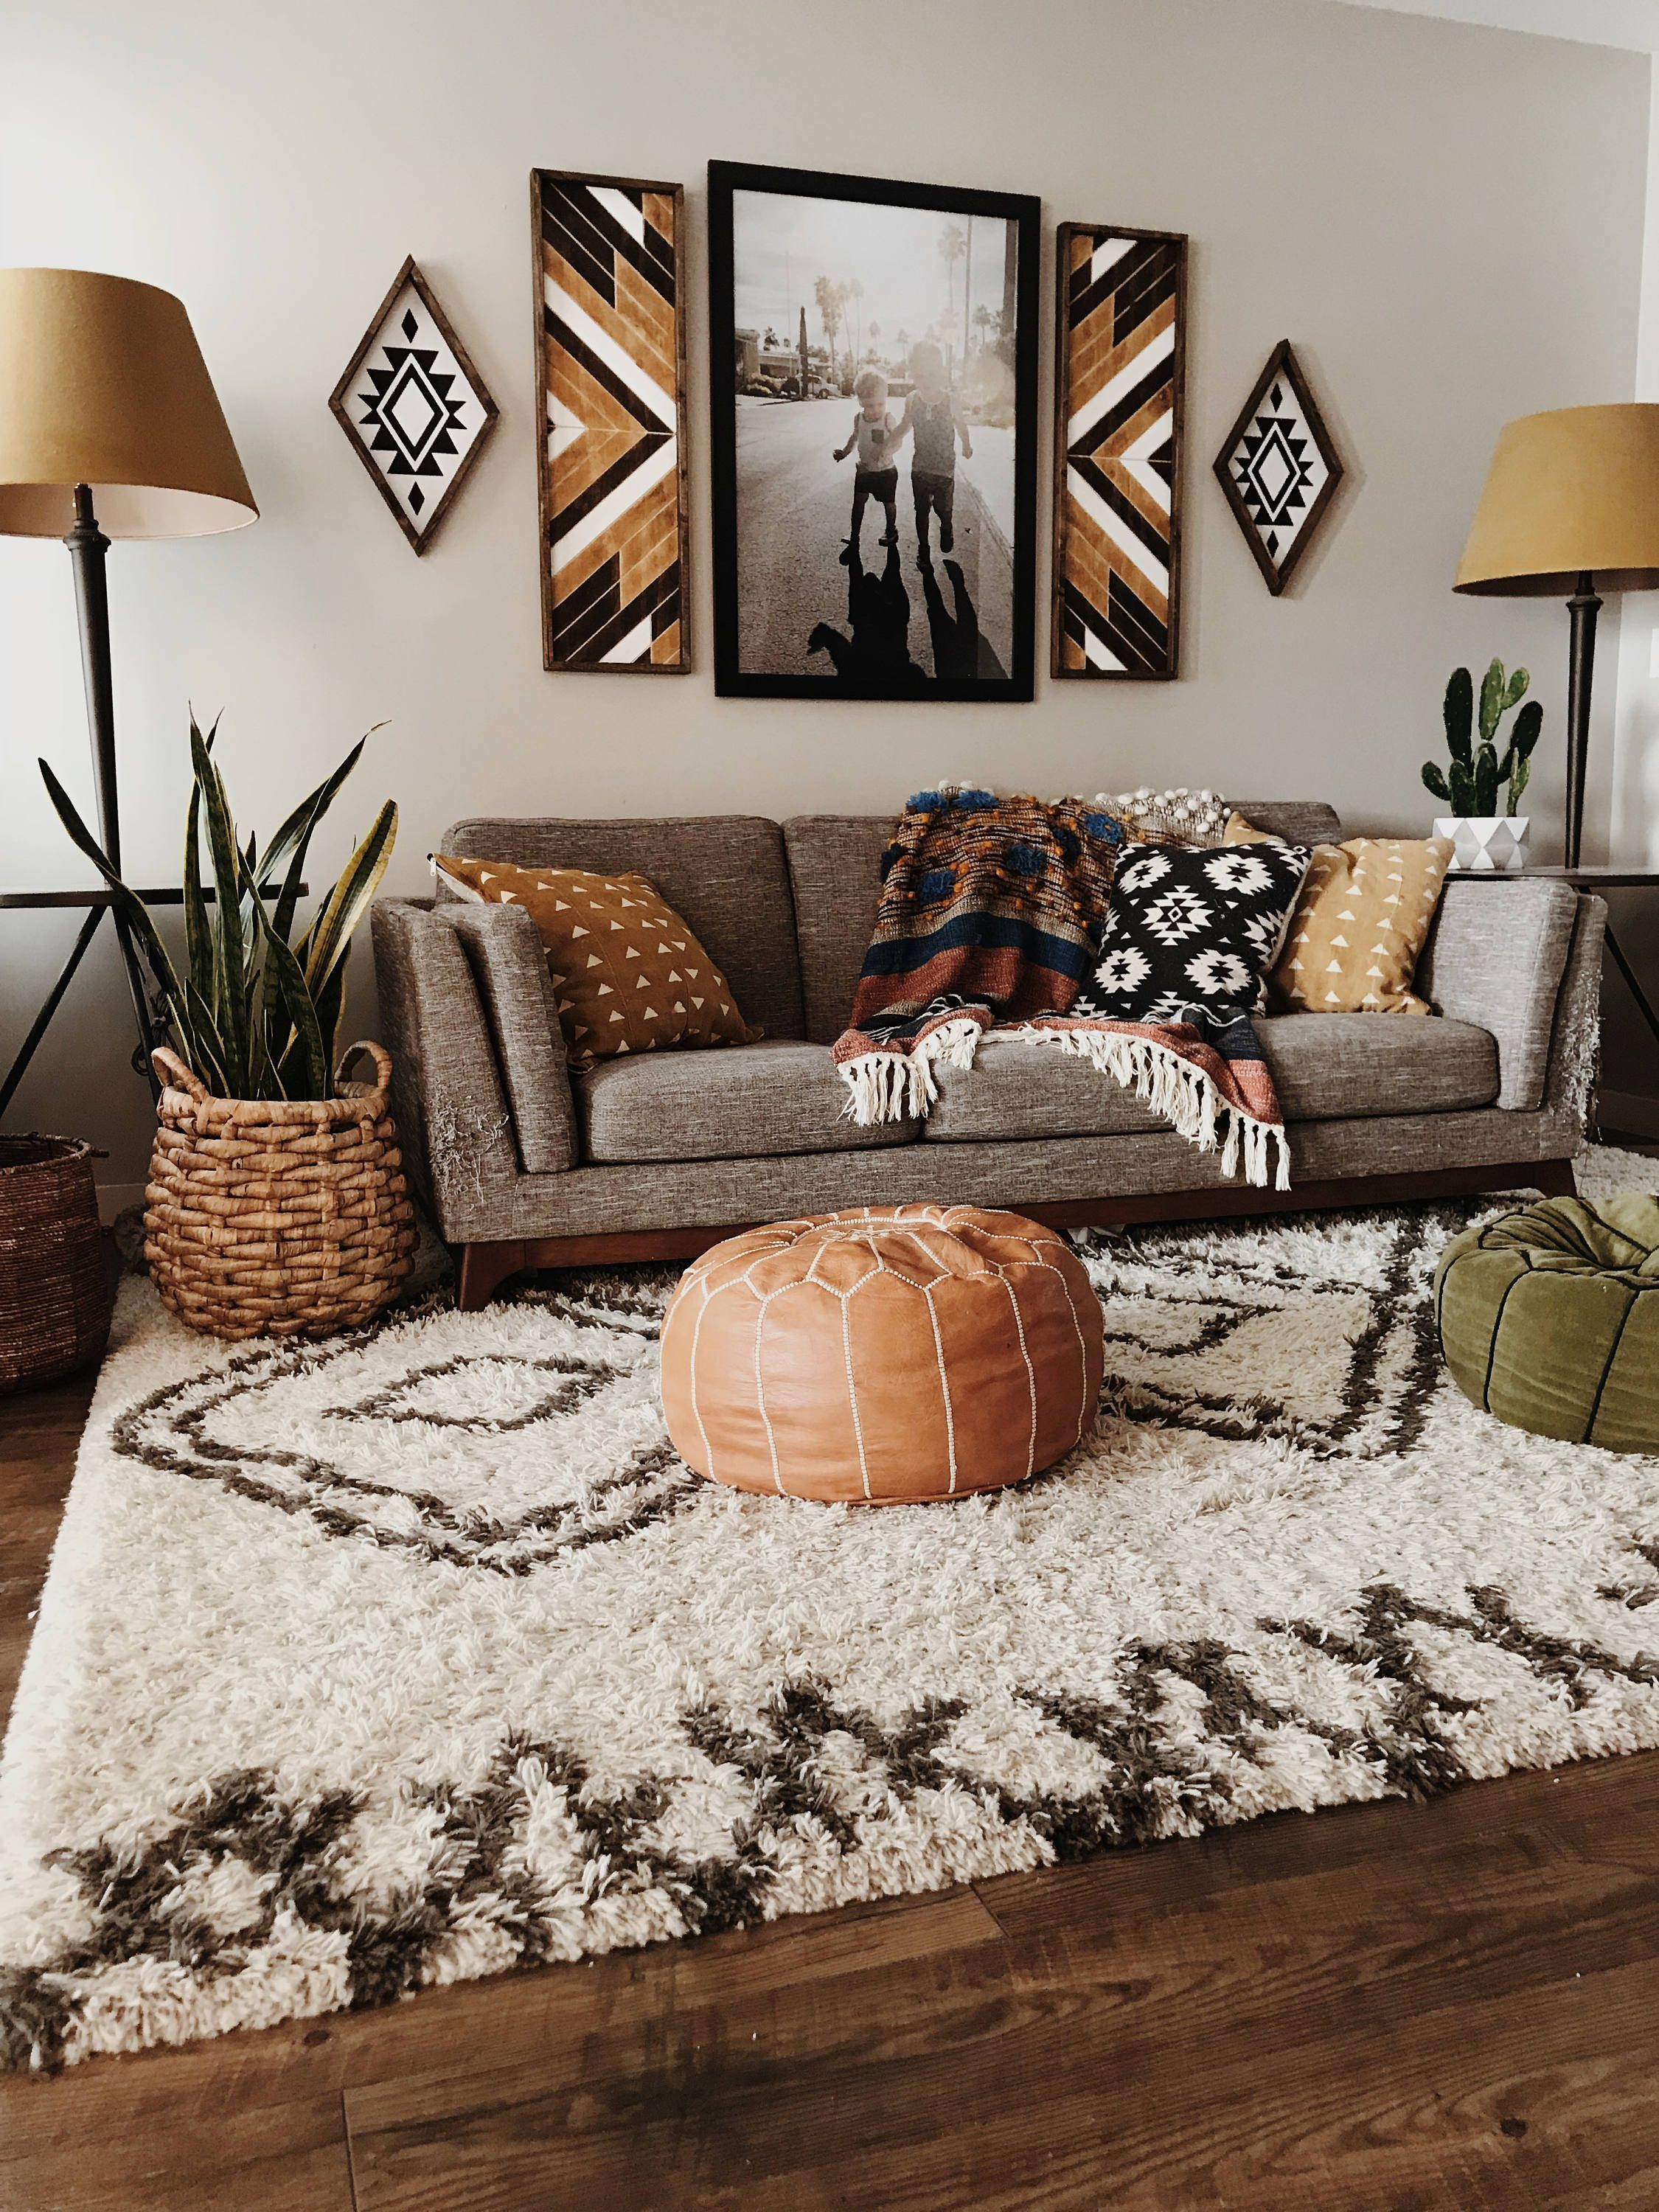 35+ Beautiful Small Living Room Ideas to Make the Most of Your Space #smallapartmentlivingroom